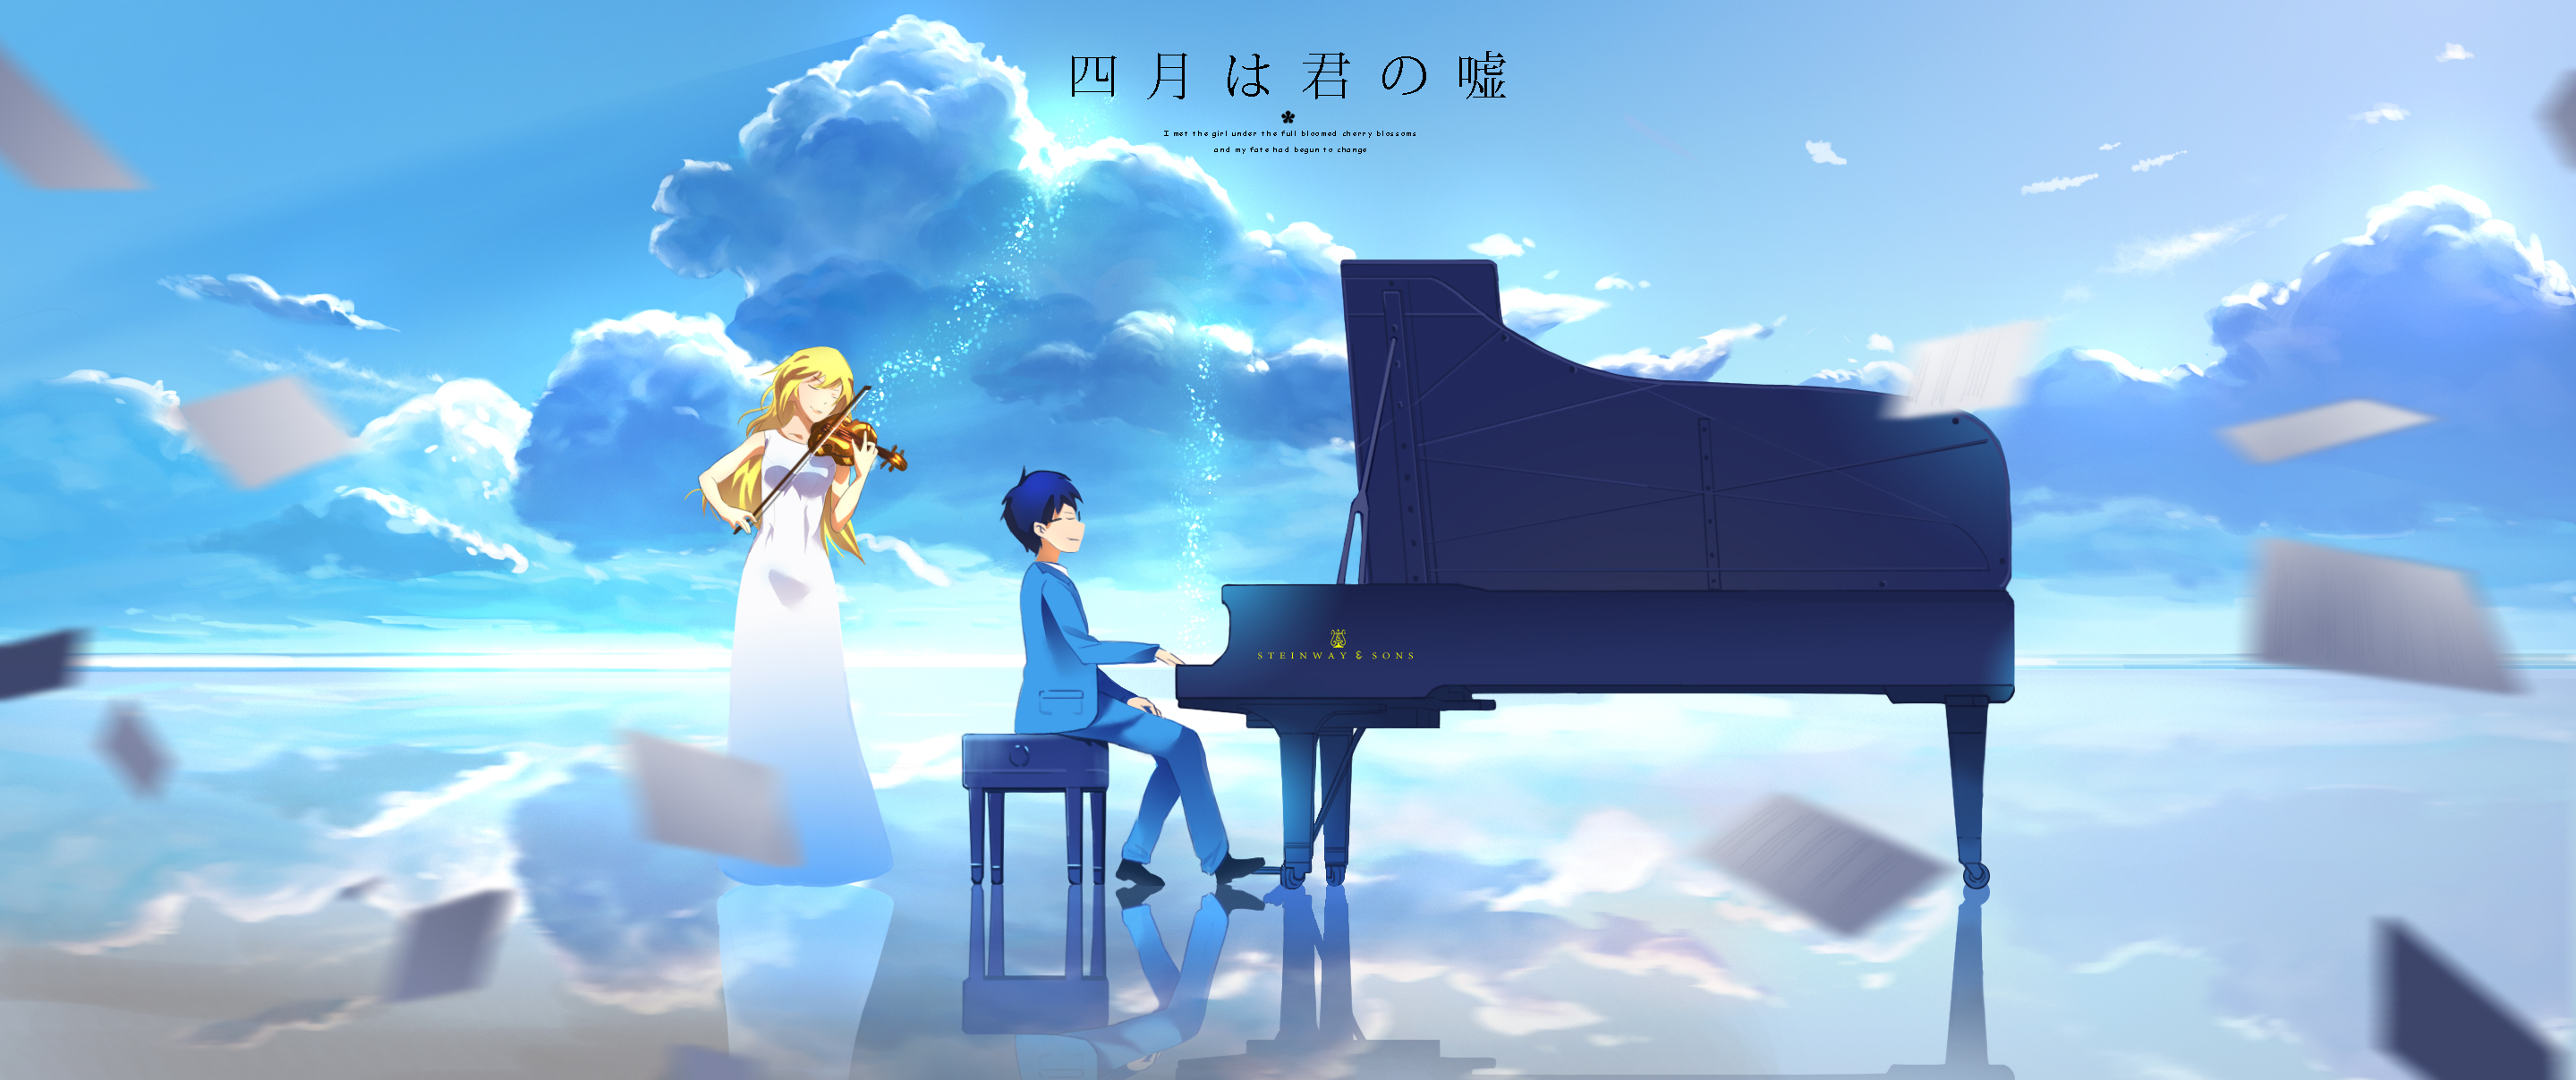 146 Your Lie in April HD Wallpapers Background Images 2879x1207